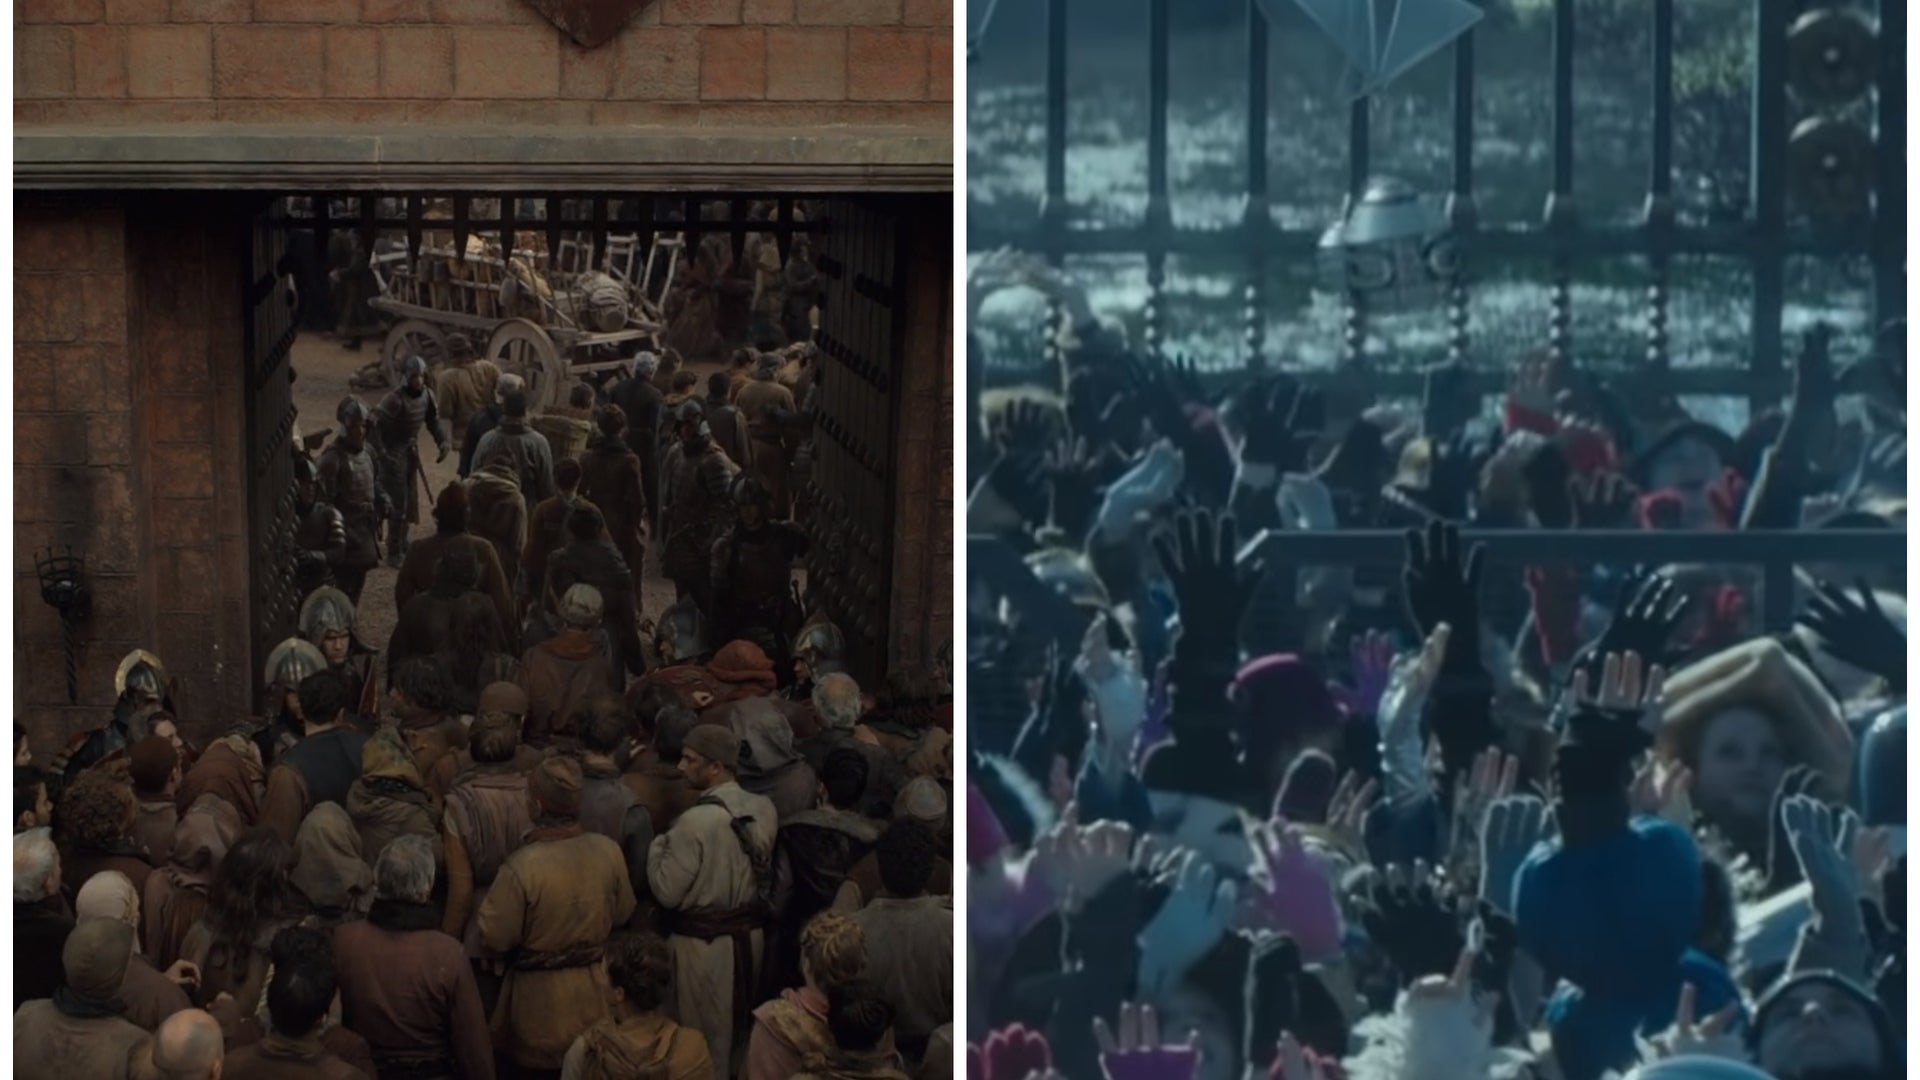 Game of Thrones, The Hunger Games: Mockingjay - Part 2